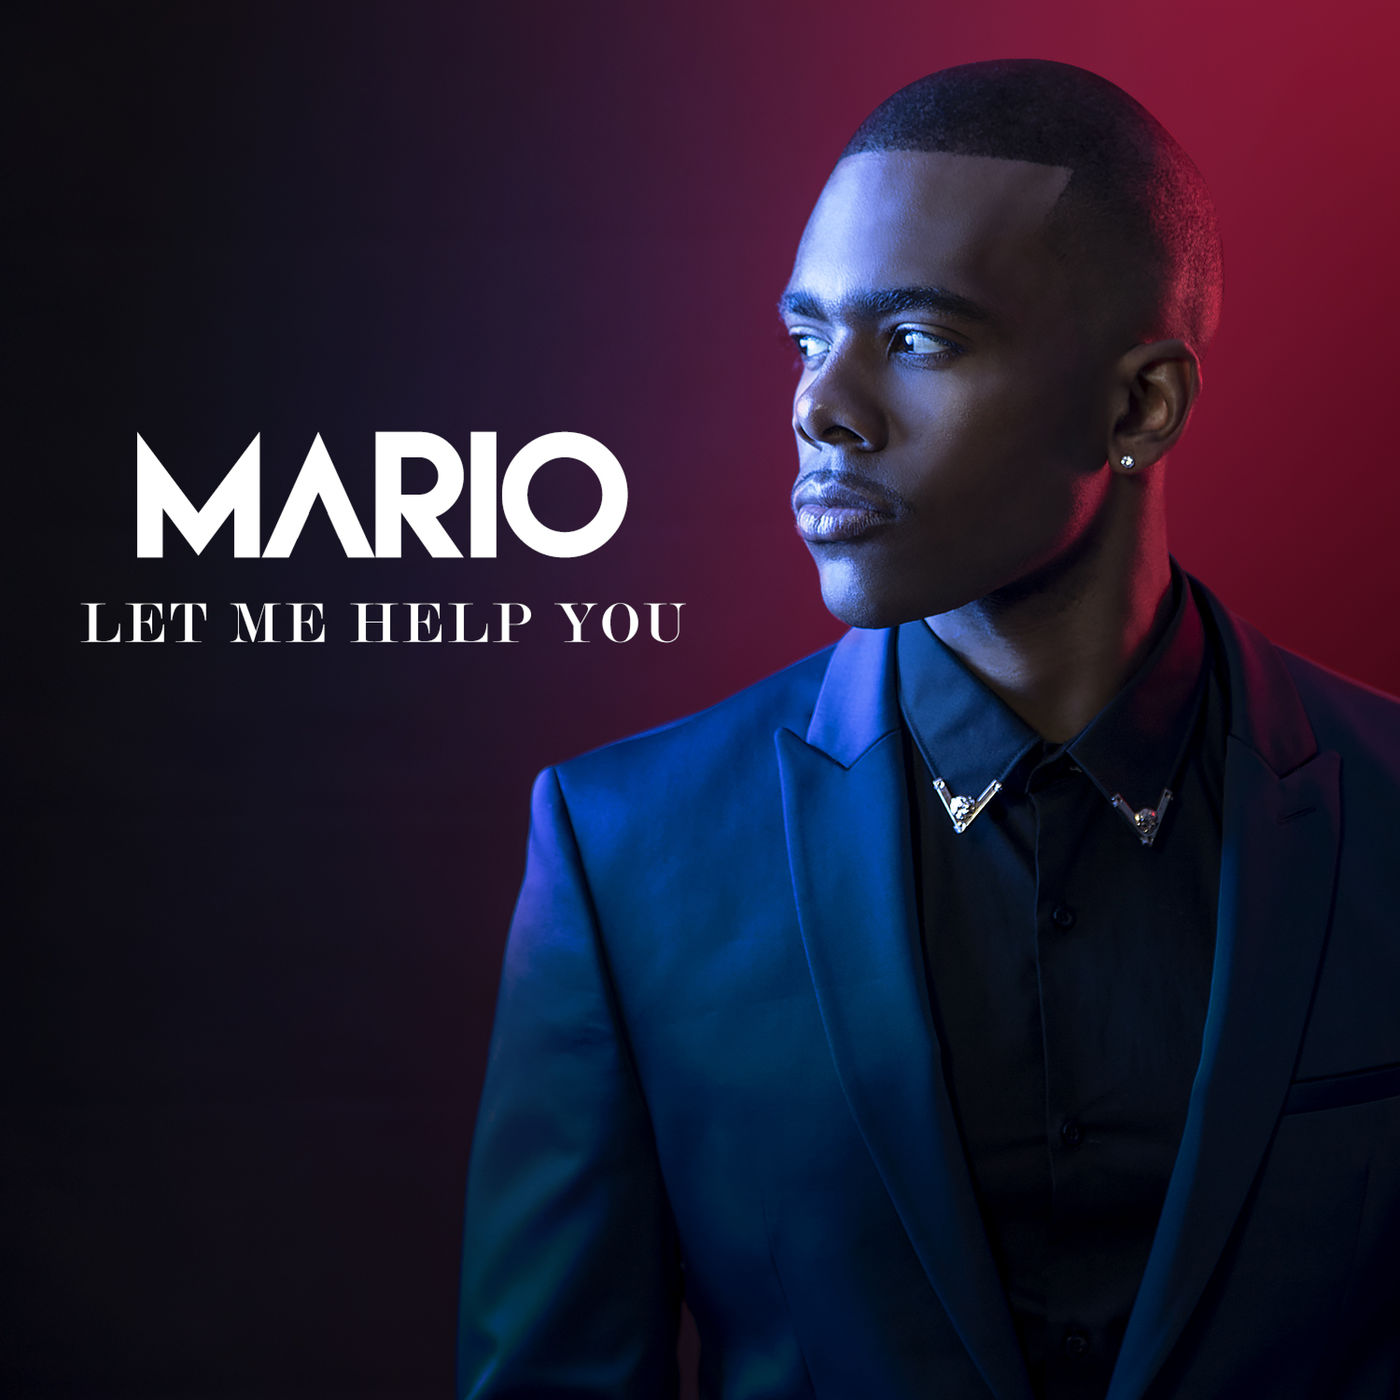 Mario - Let Me Help You - Single Cover